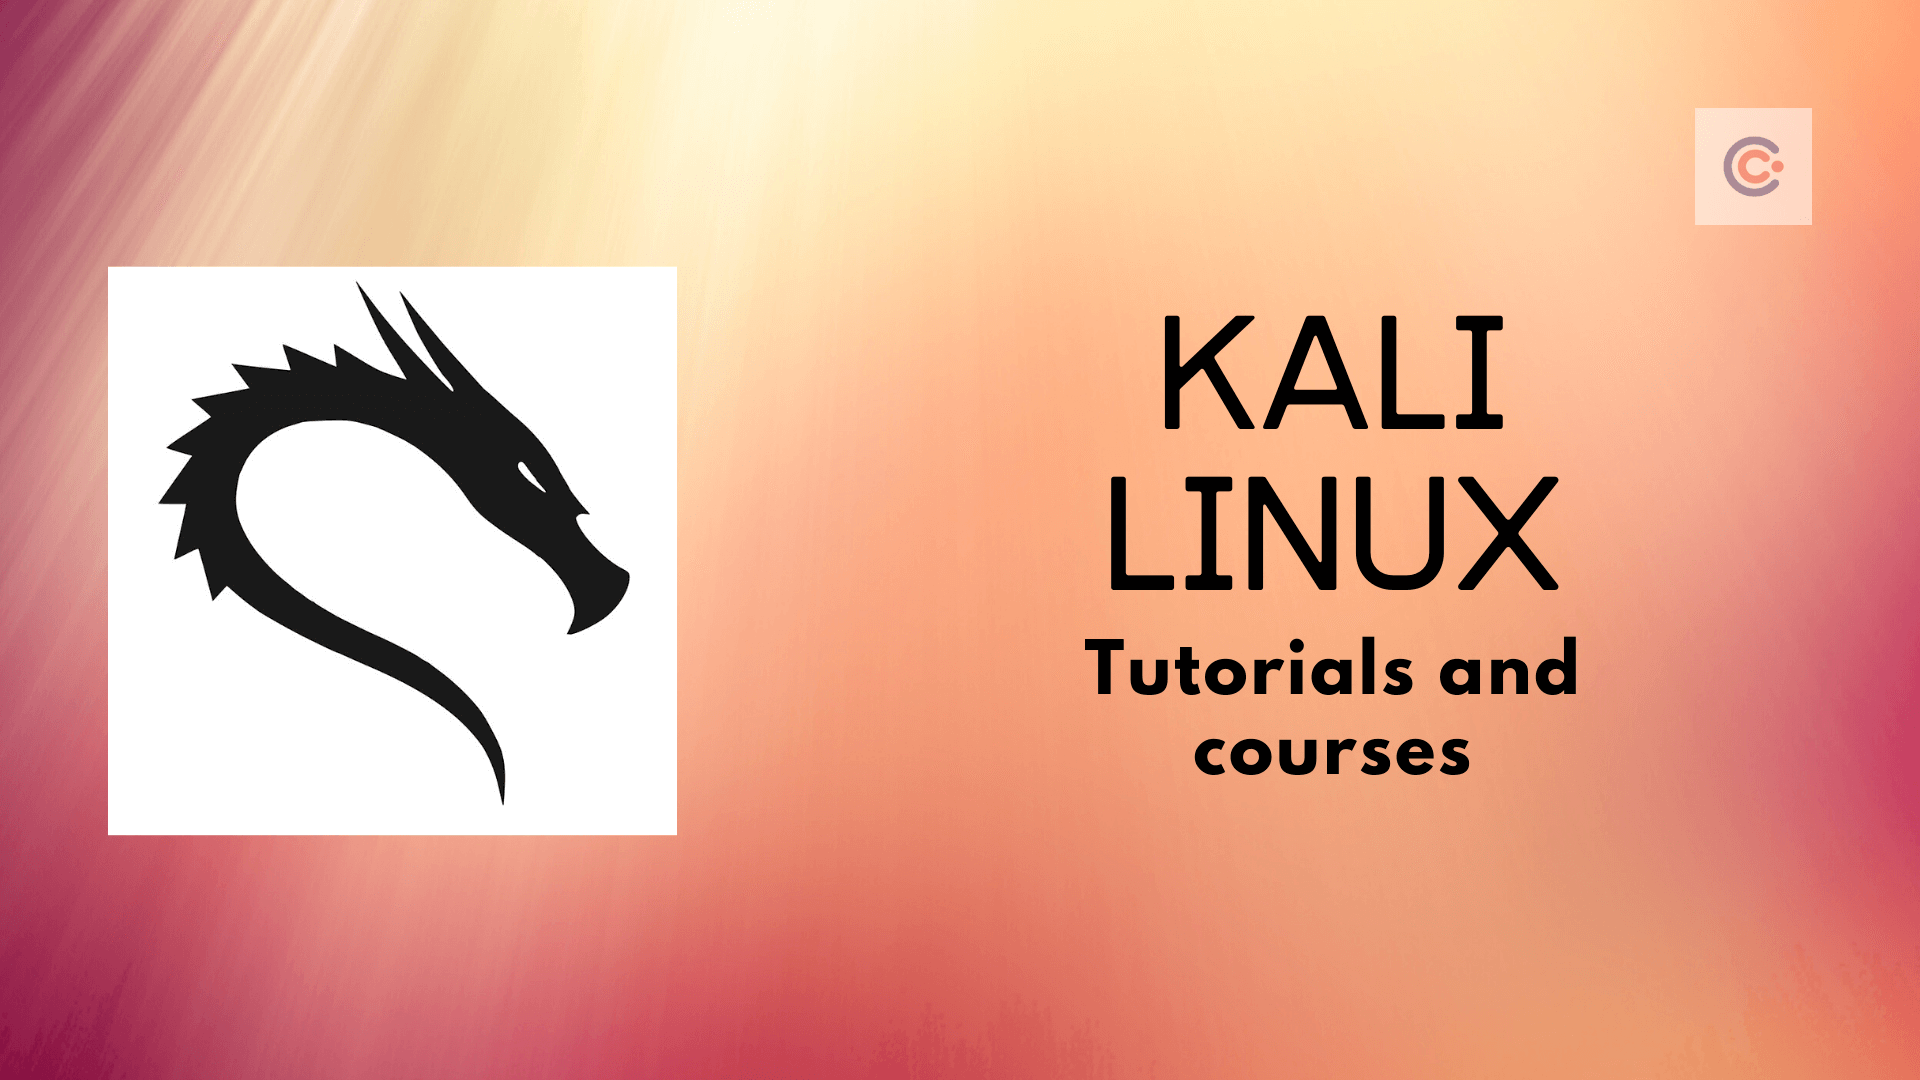 8 Best Kali Linux Tutorials & Courses - Learn Kali Linux Online